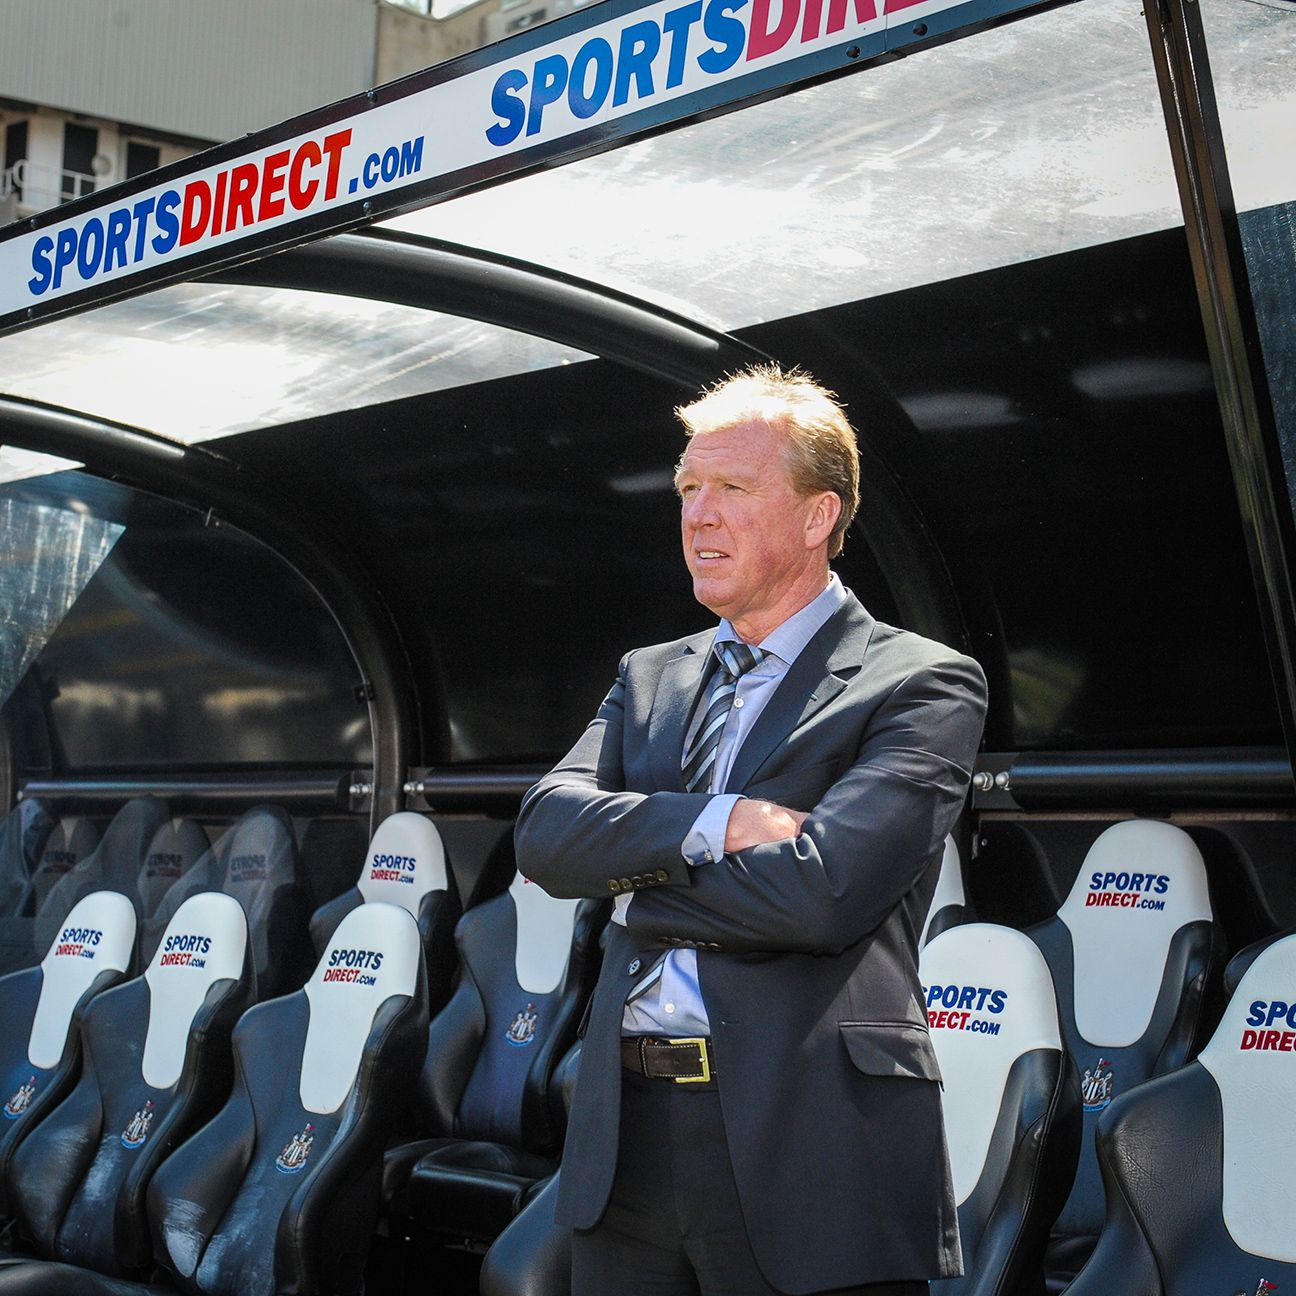 Steve McClaren takes over a Newcastle side that was rocked by relegation fears in 2014-15.